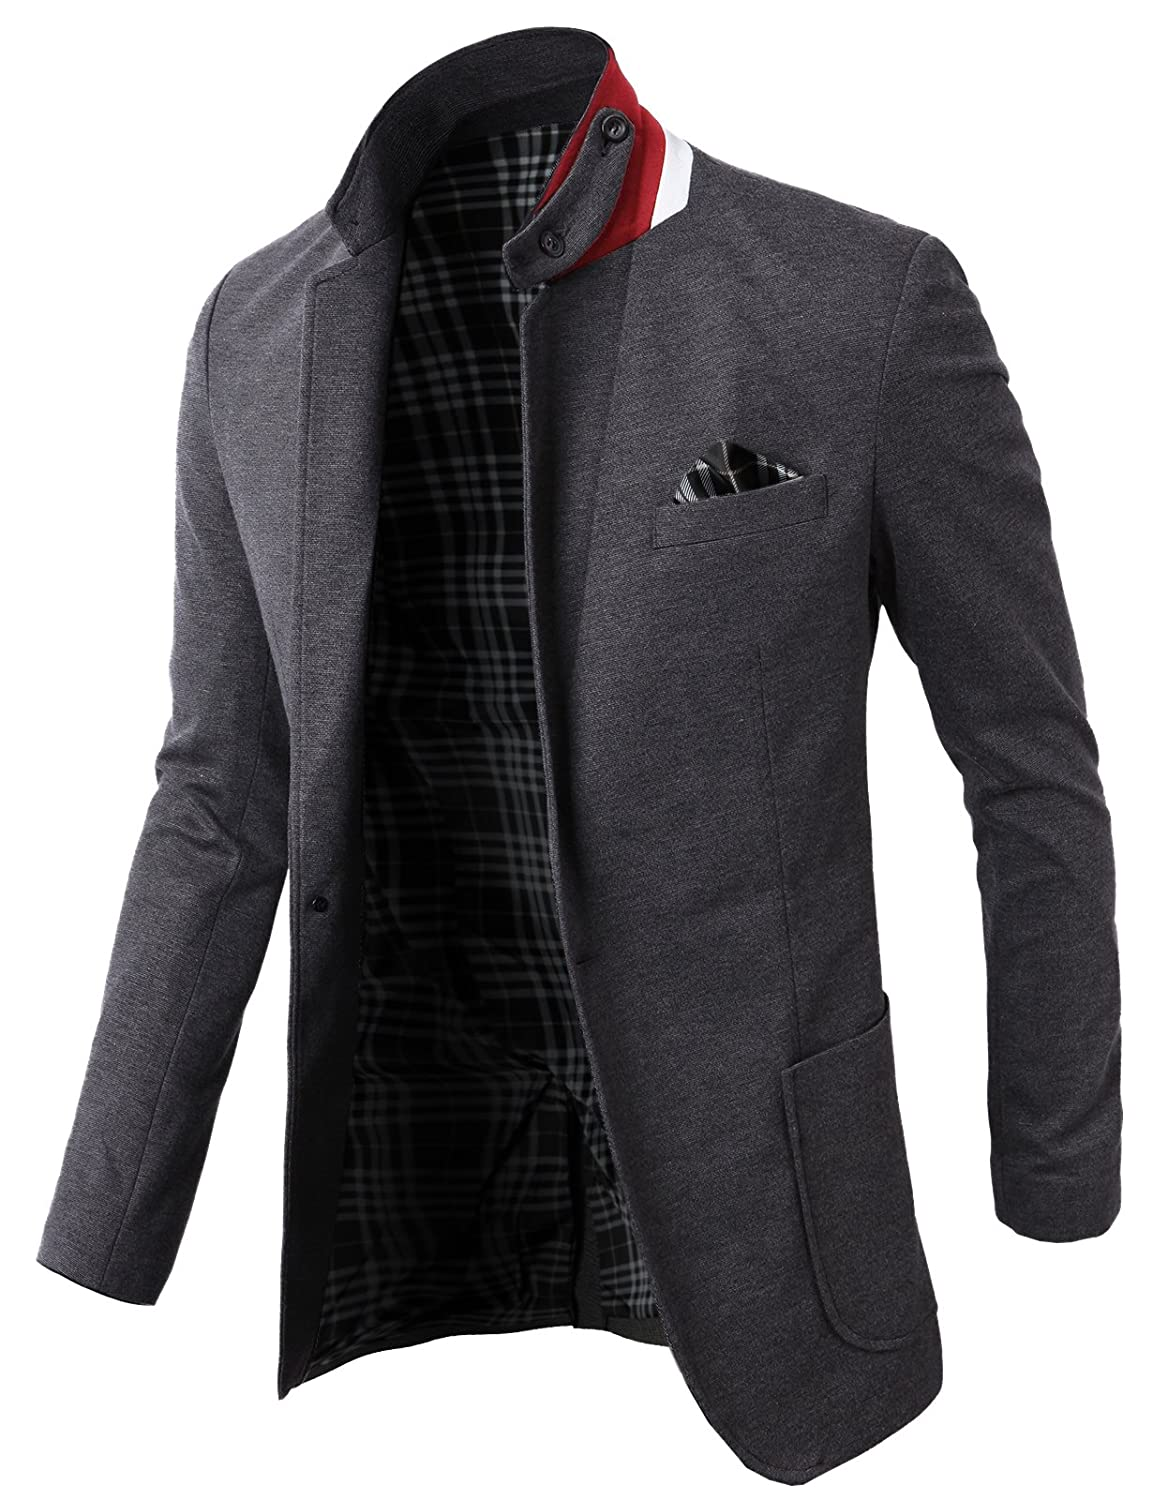 H2H Mens Casual Slim Fit Mandarin Collar Single Breasted Jacket #CMOBL015